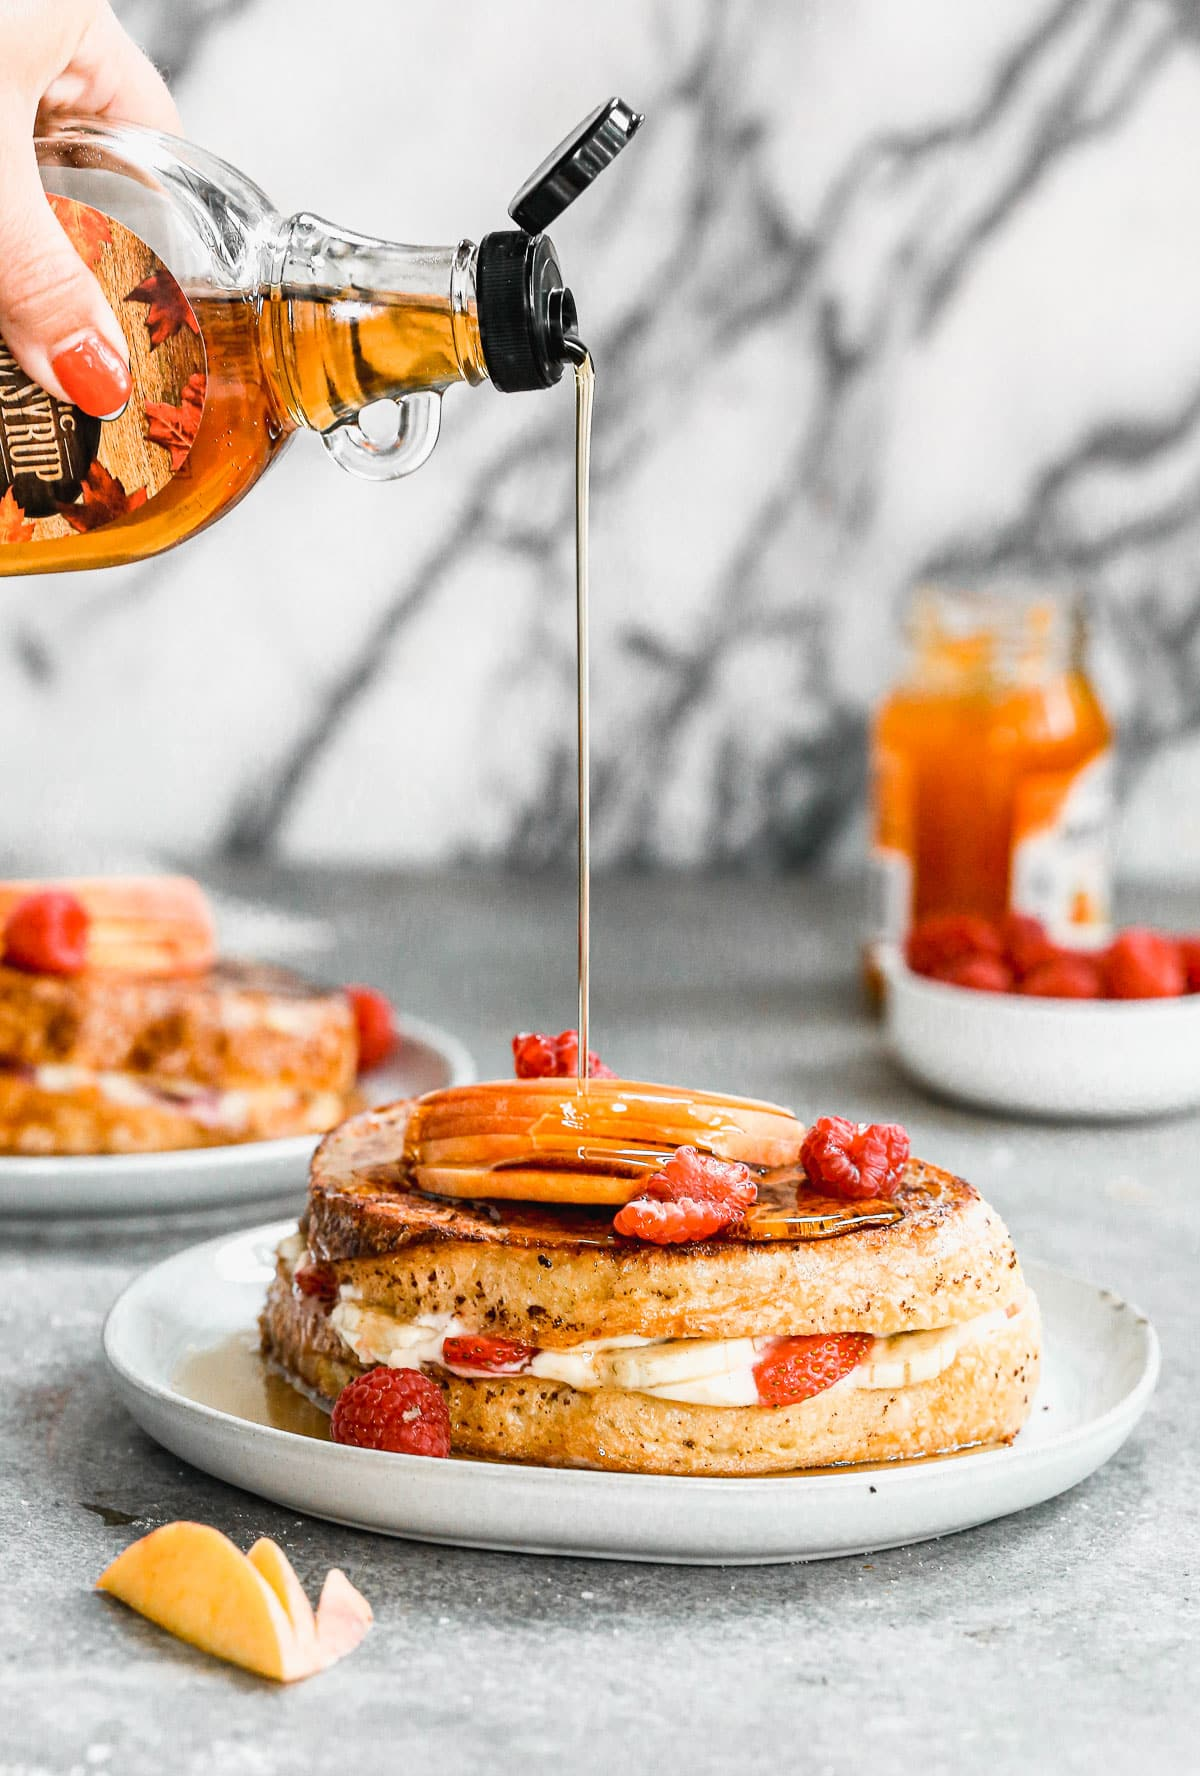 syrup drizzling on stuffed french toast